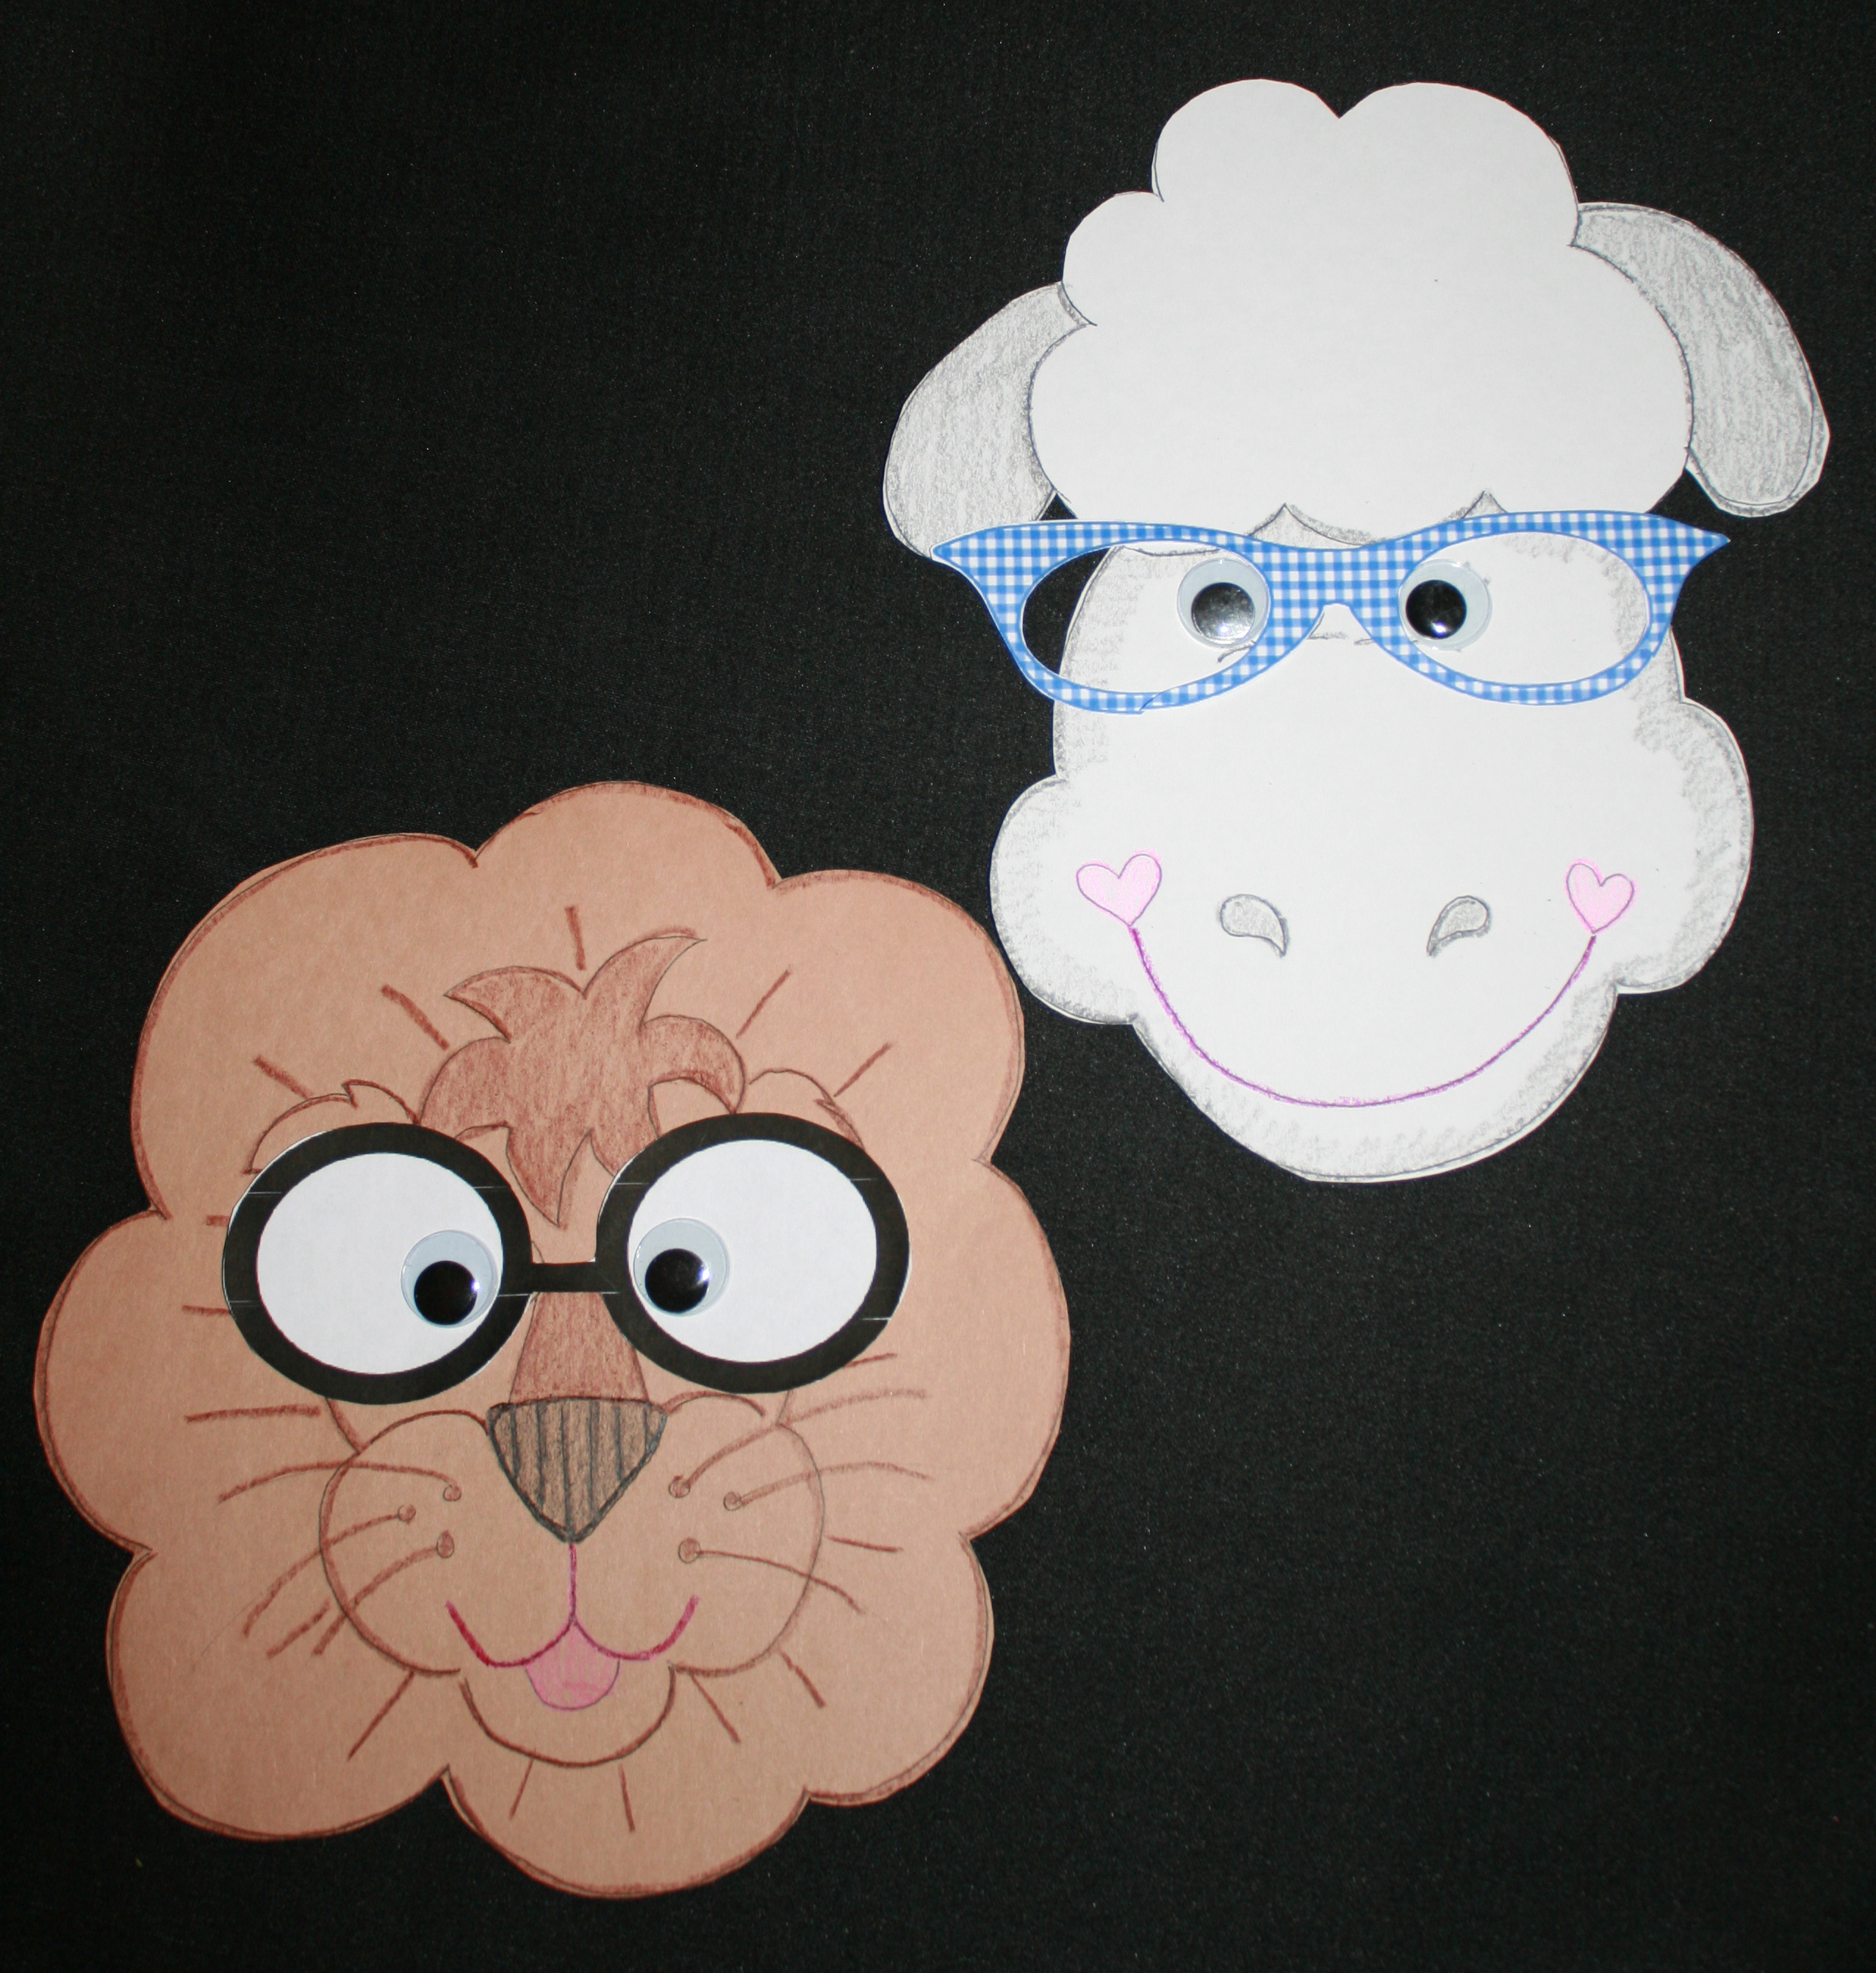 sheep slider, sheep activities, lion and lamb activities, march activities, springrime activities, sheep crafts, lamb crafts, nursery rhyme crafts, nursery rhyme activities, sheep booklet, lion booklet, march writing prompts, march class books, writing class books, sheep activities for preschool kindergarten and first grade, lion activities for preschool kindergarten and first grade, lion mask, sheep mask, lion puppet, March writing prompts,sheep puppet,